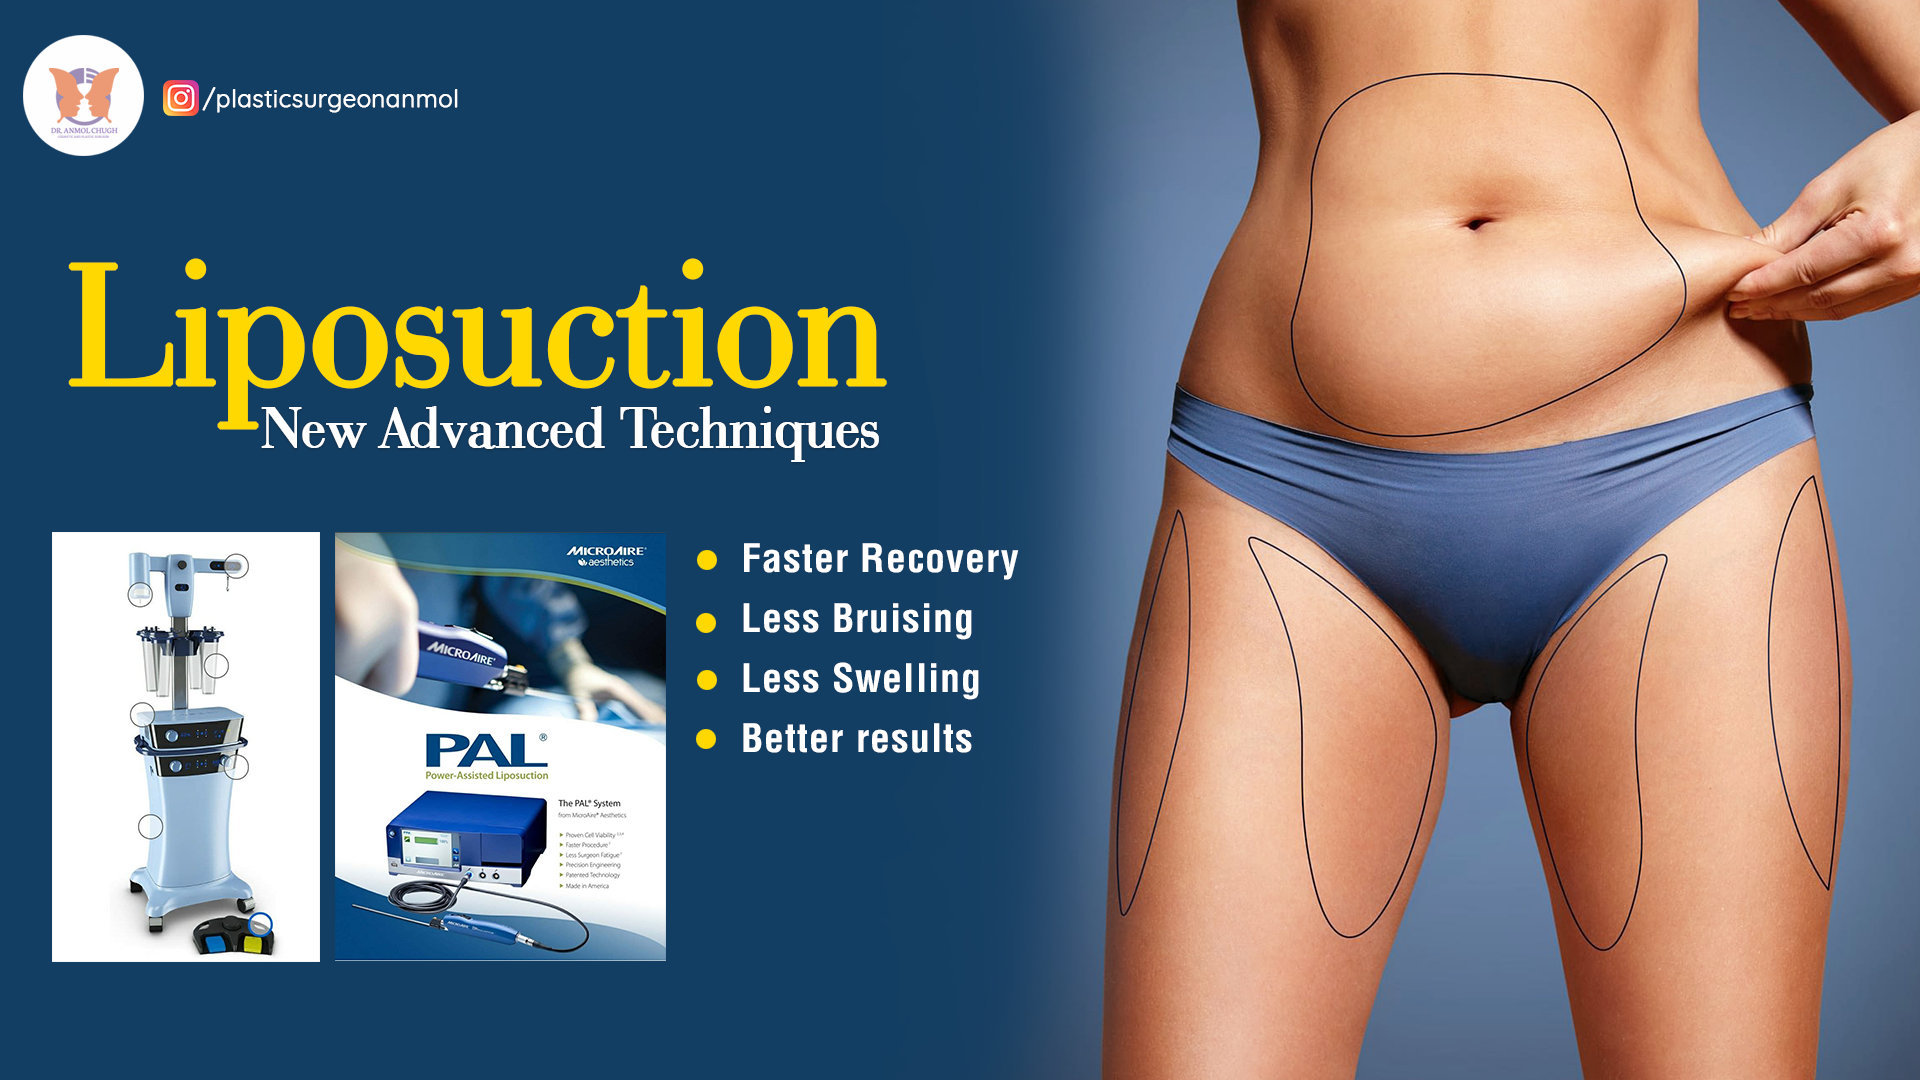 What Are The New advanced Technologies Involved In Liposuction Treatment?